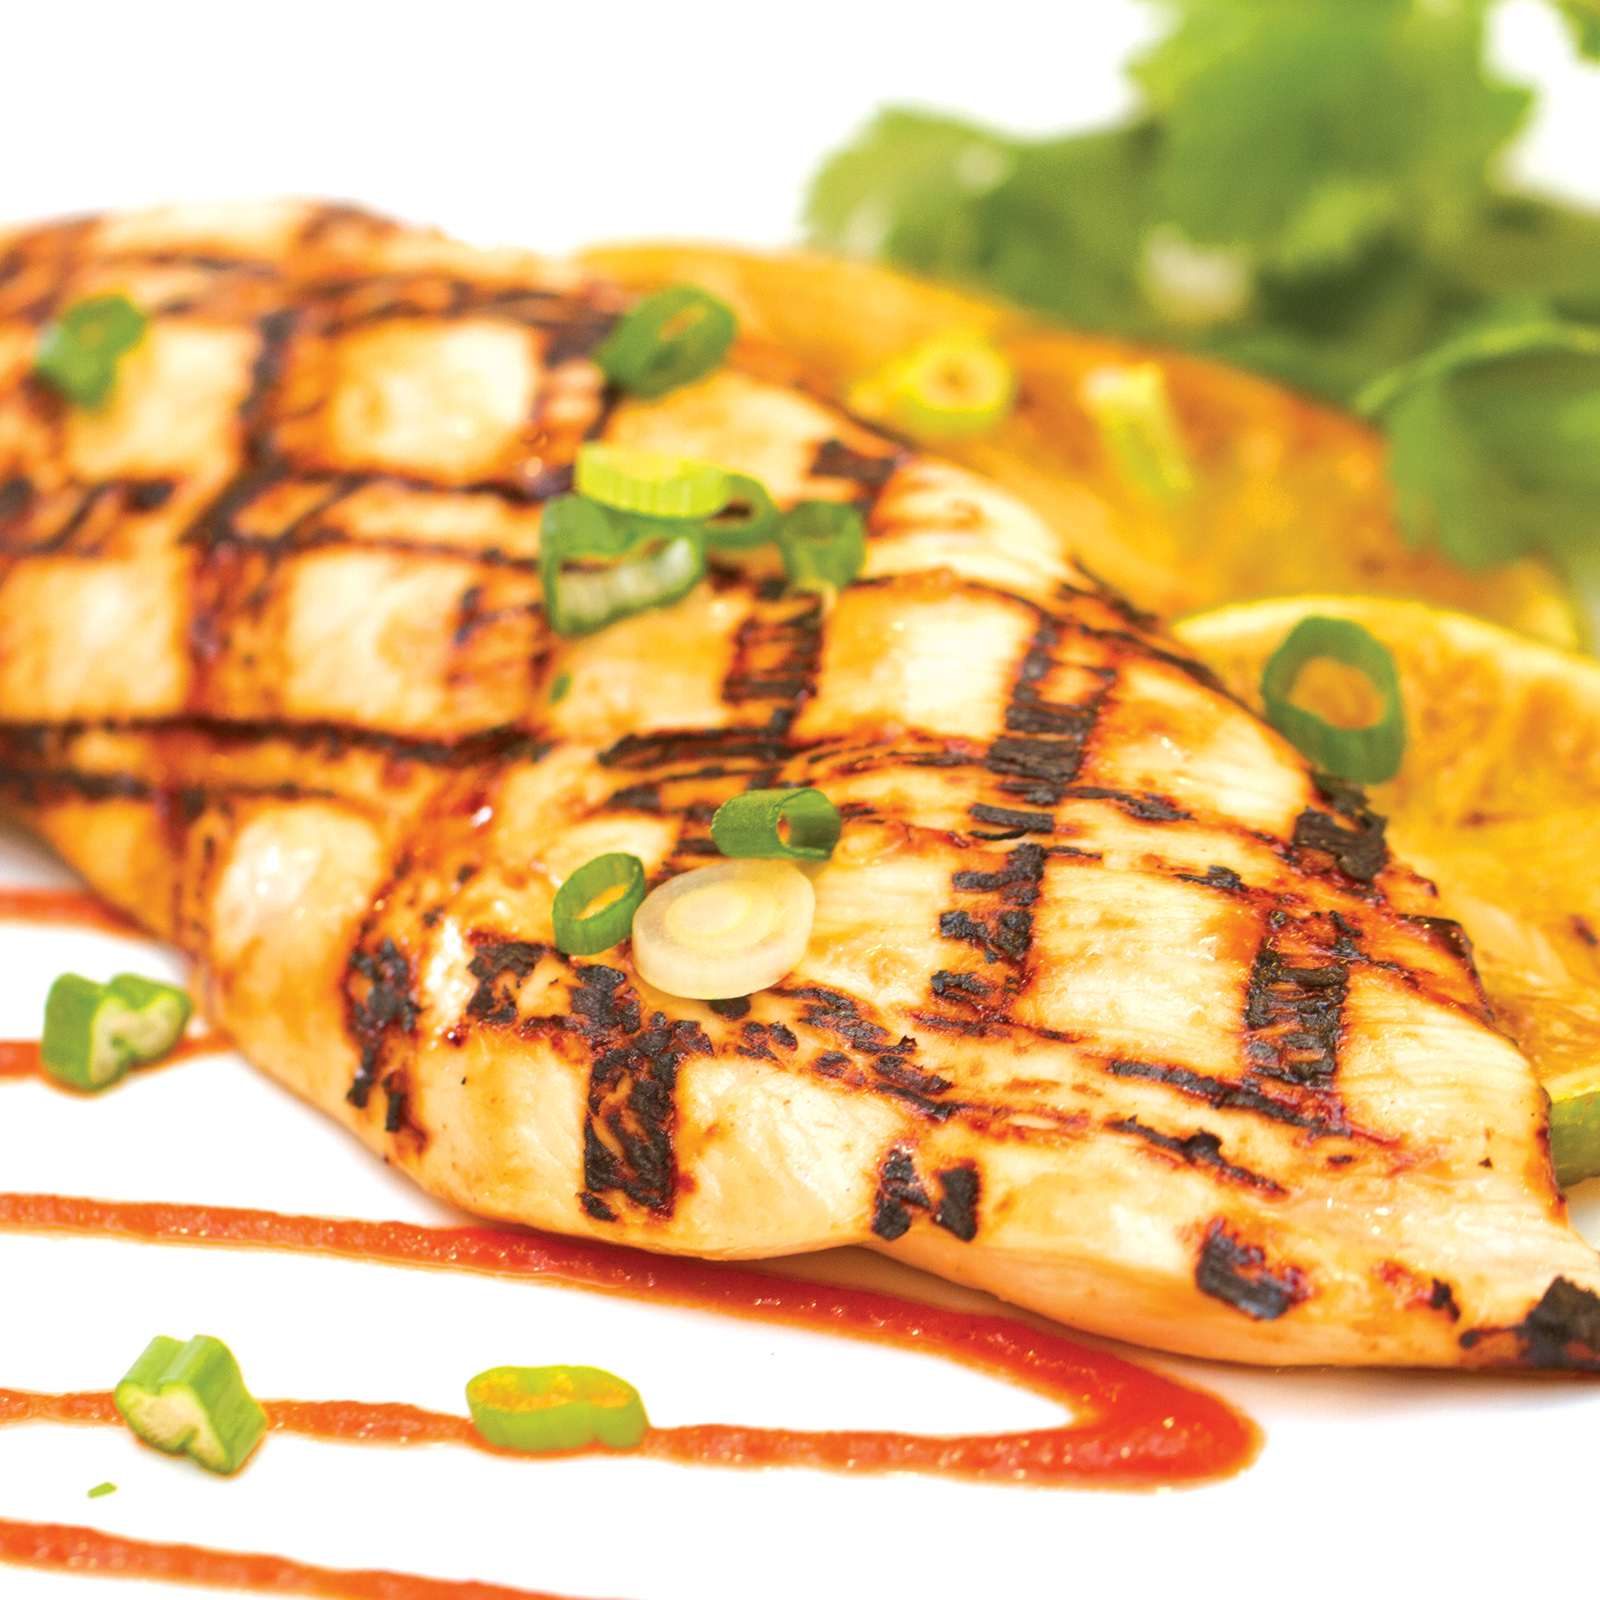 Grilled Chicken Breasts.jpg